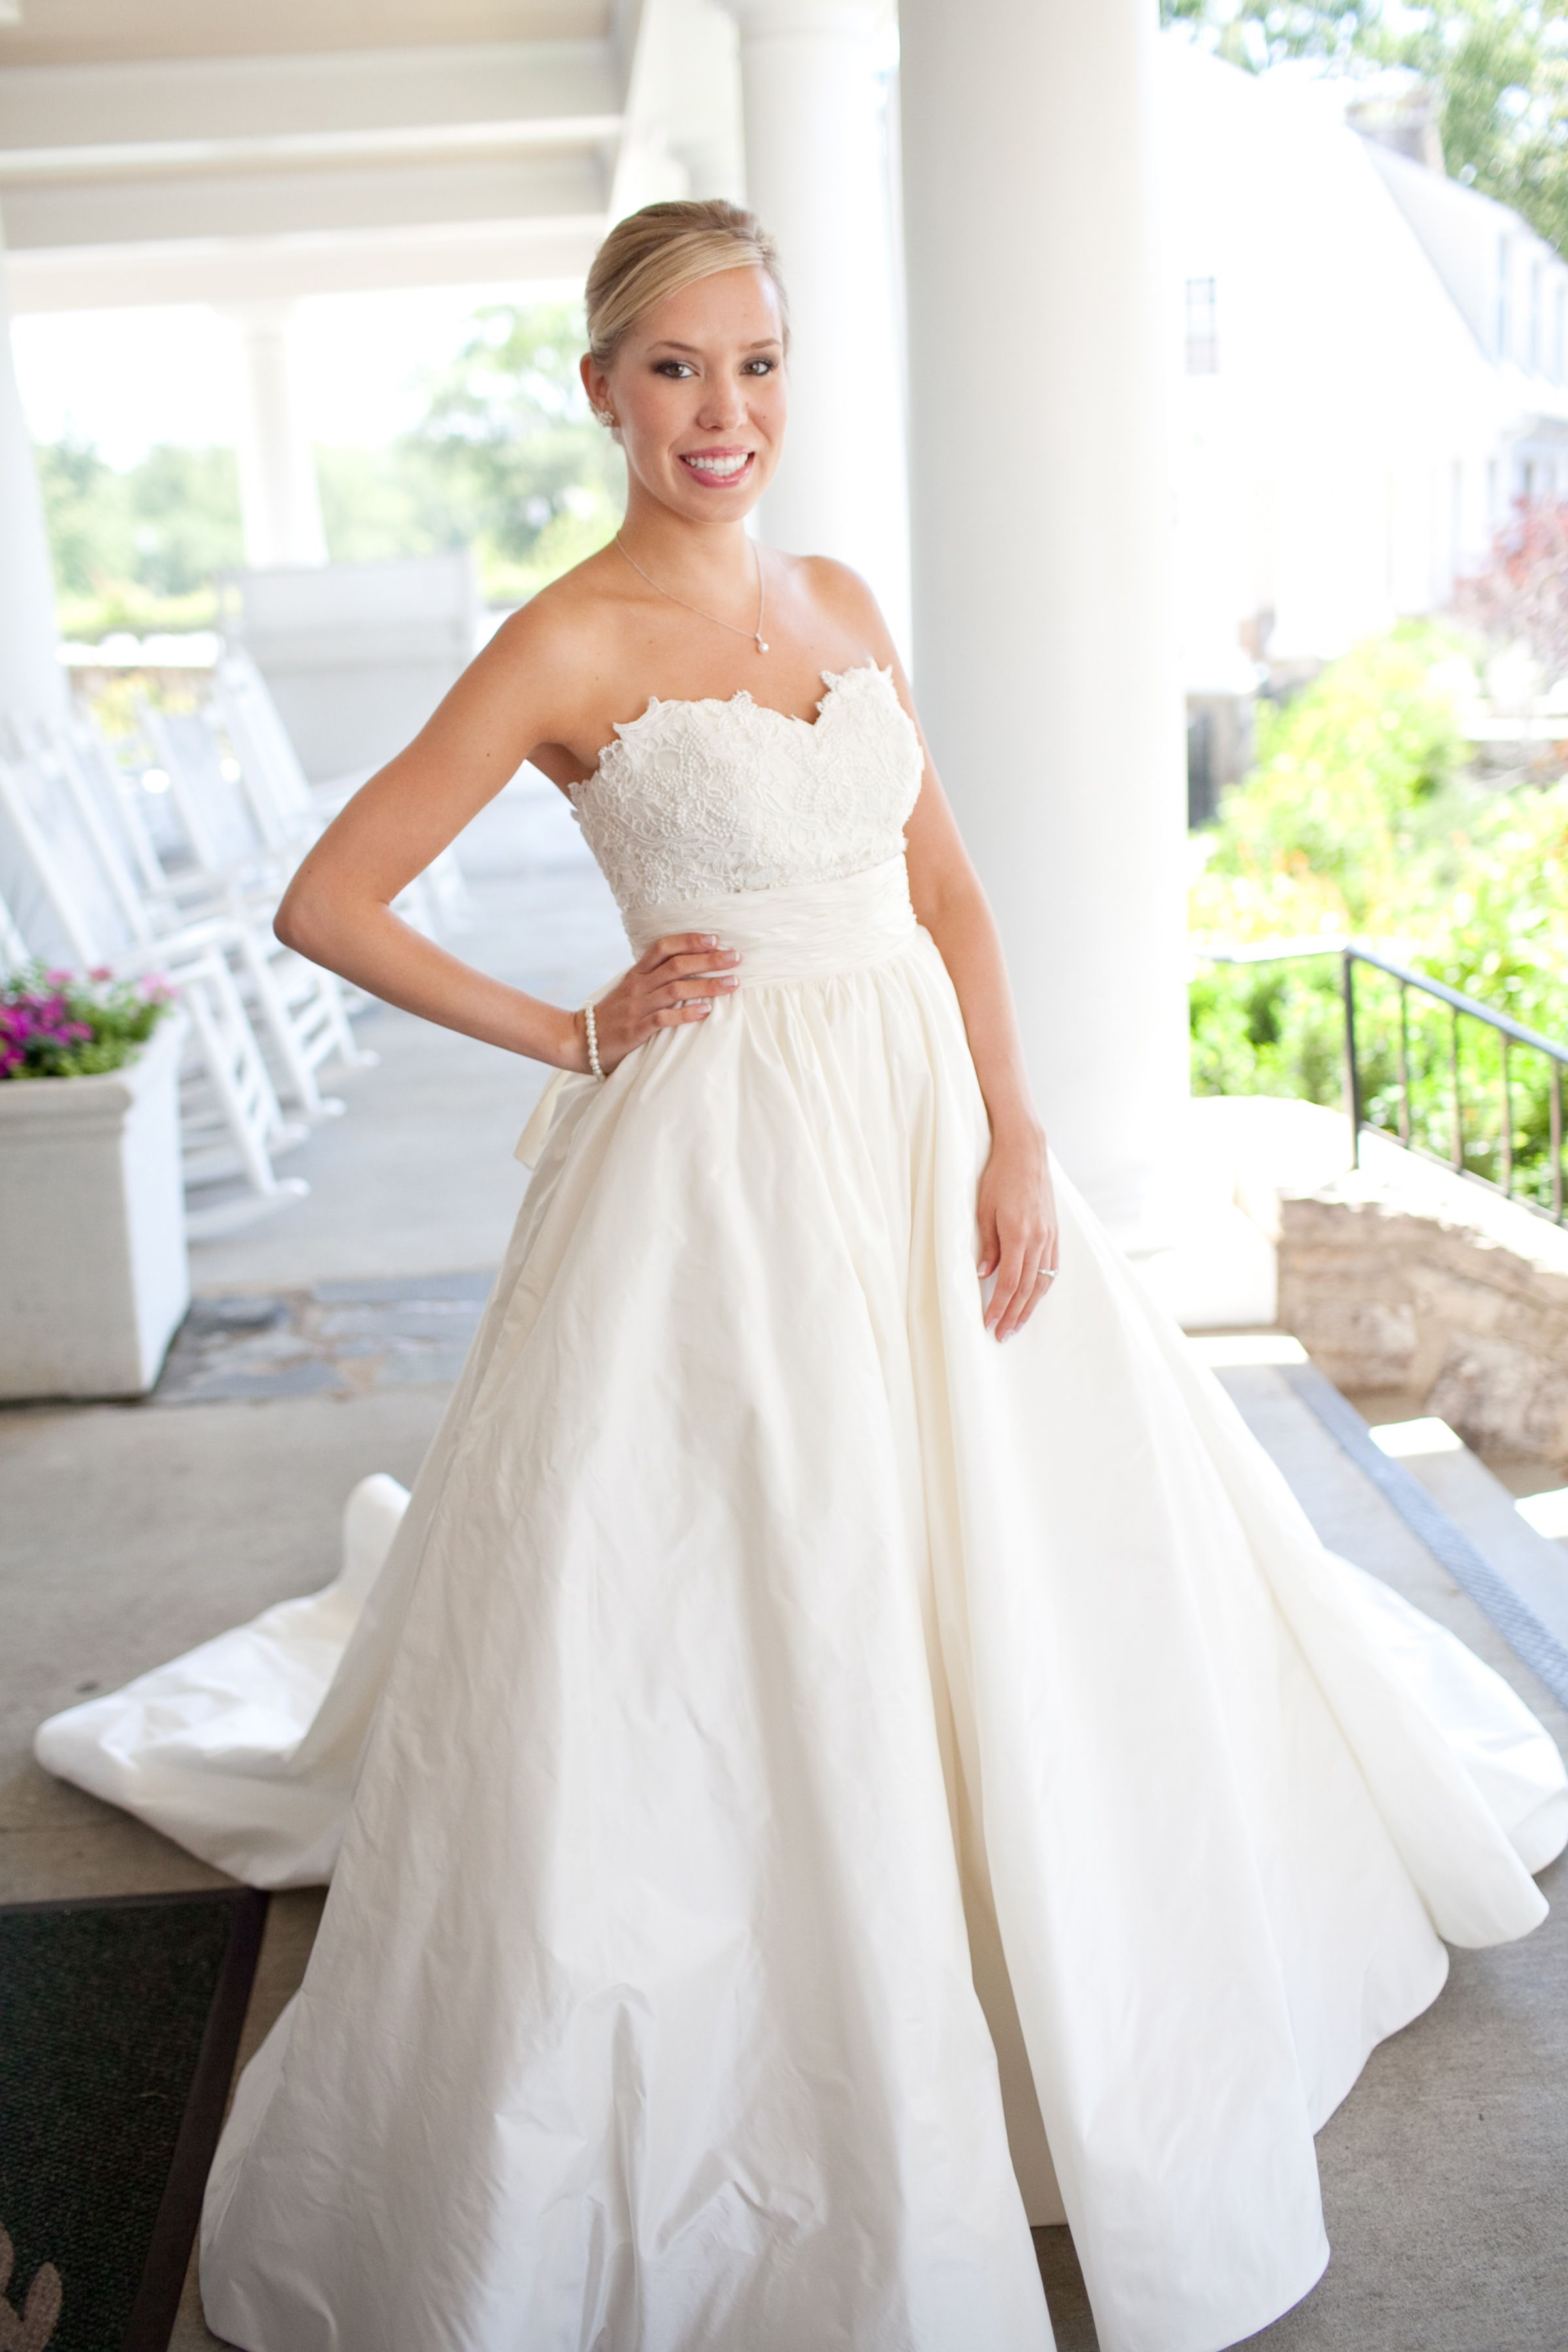 We love this Georgia bride wearing the Chatham gown by Anne Barge ...